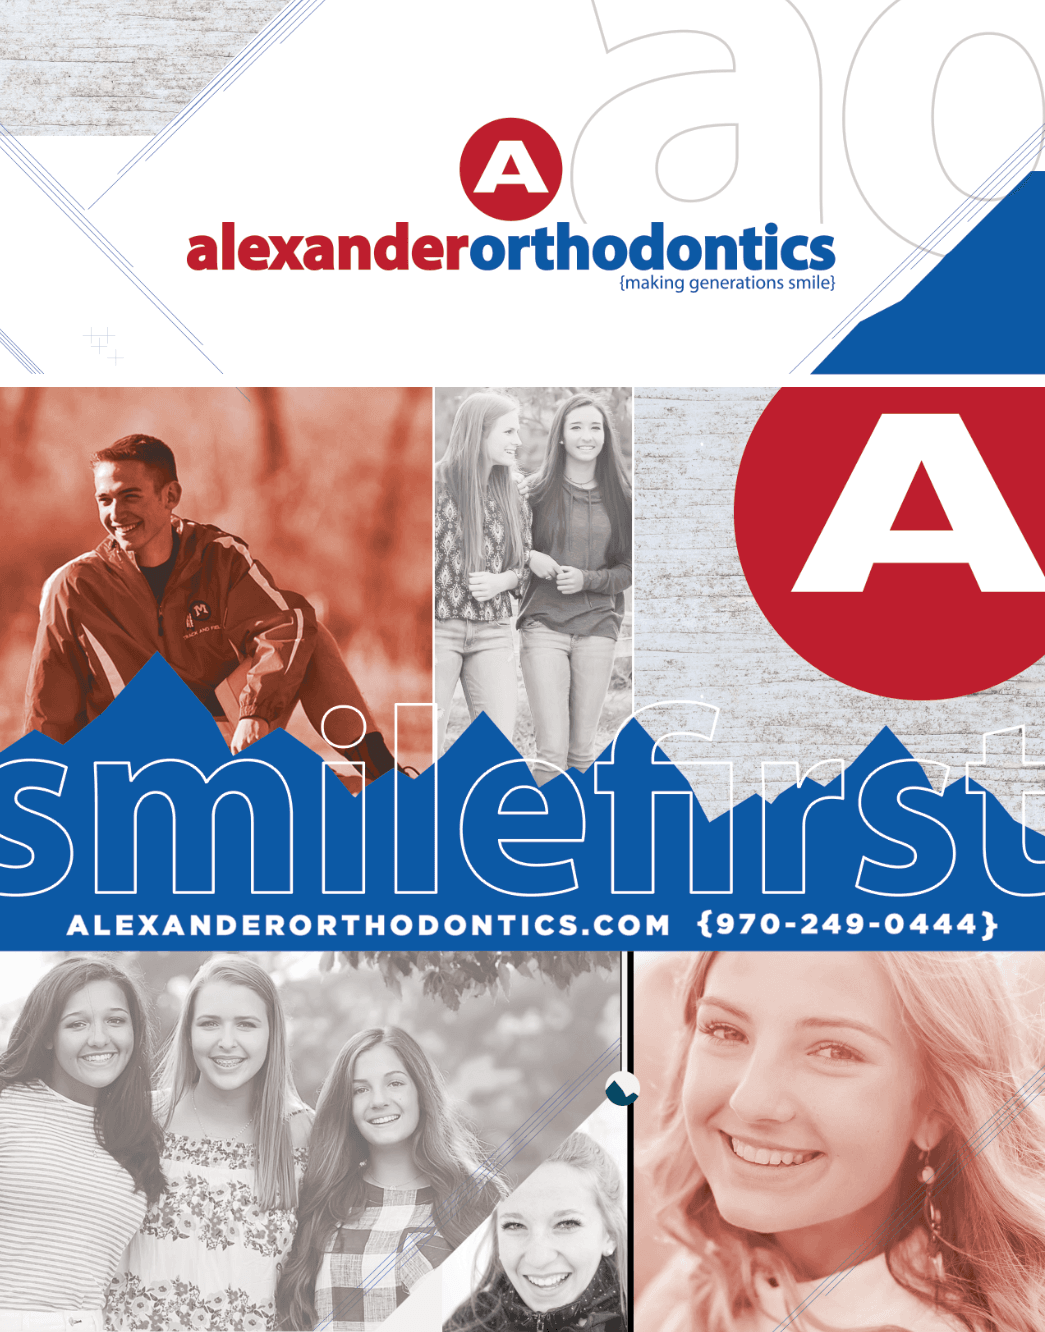 Alexander Orthodontics fall 2018 ad